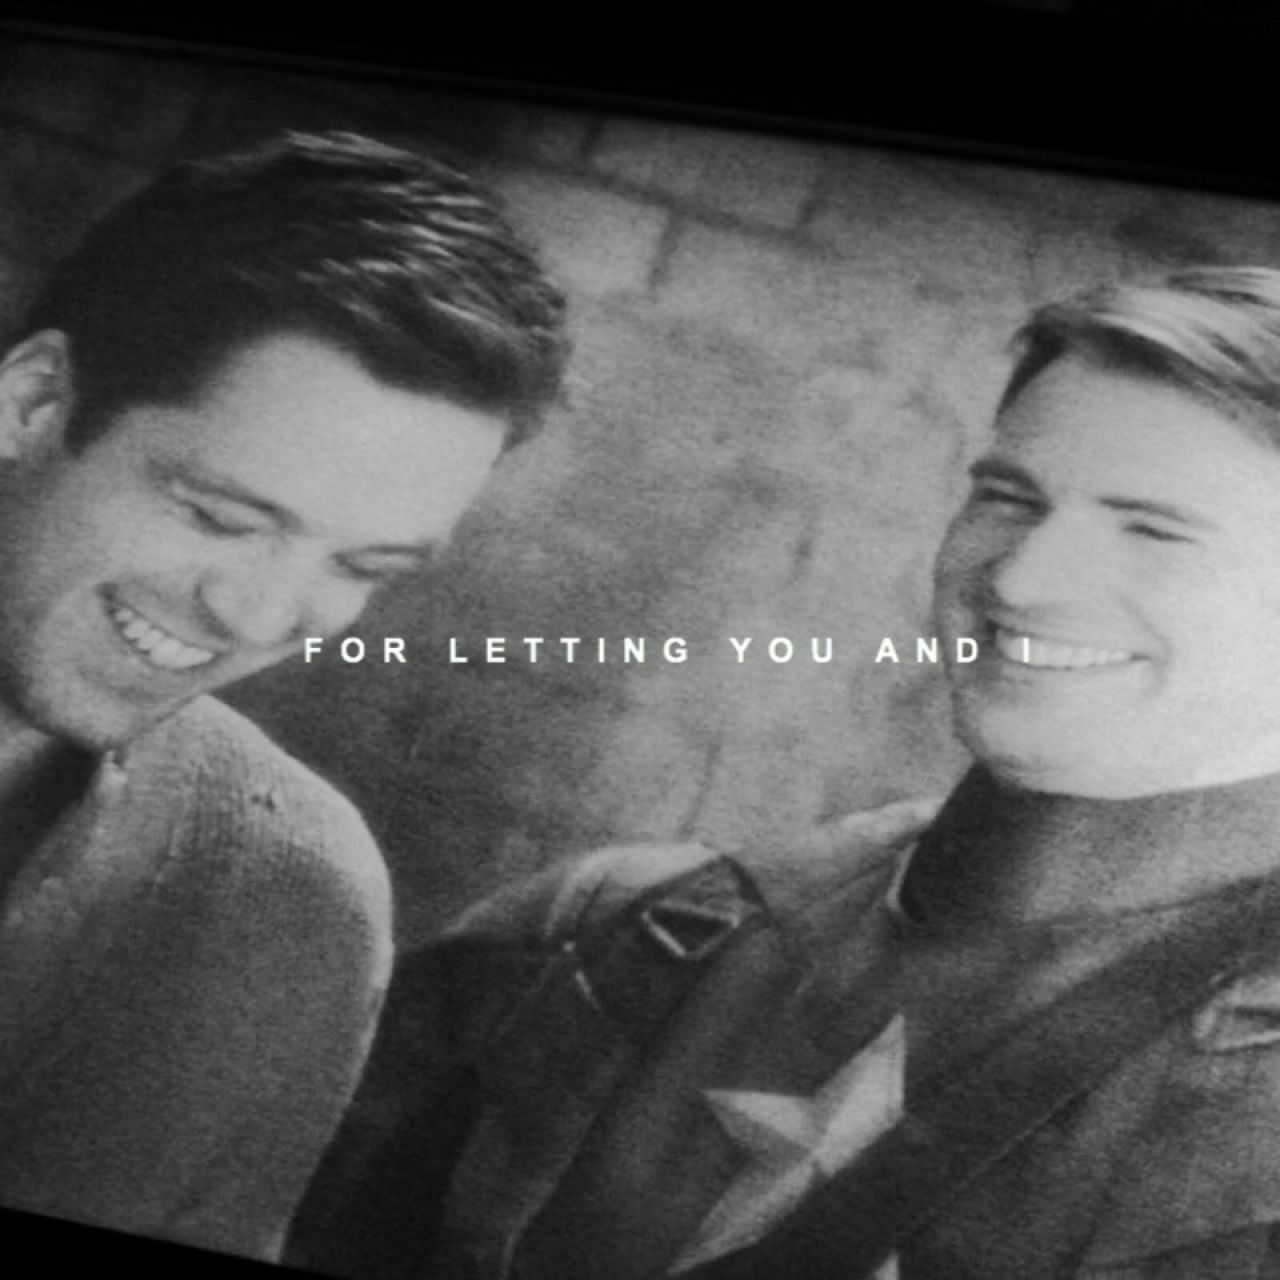 Pin By Hello On Captain America Iron Man Winter Soldier Besties Marvel Movies Stucky Captain America